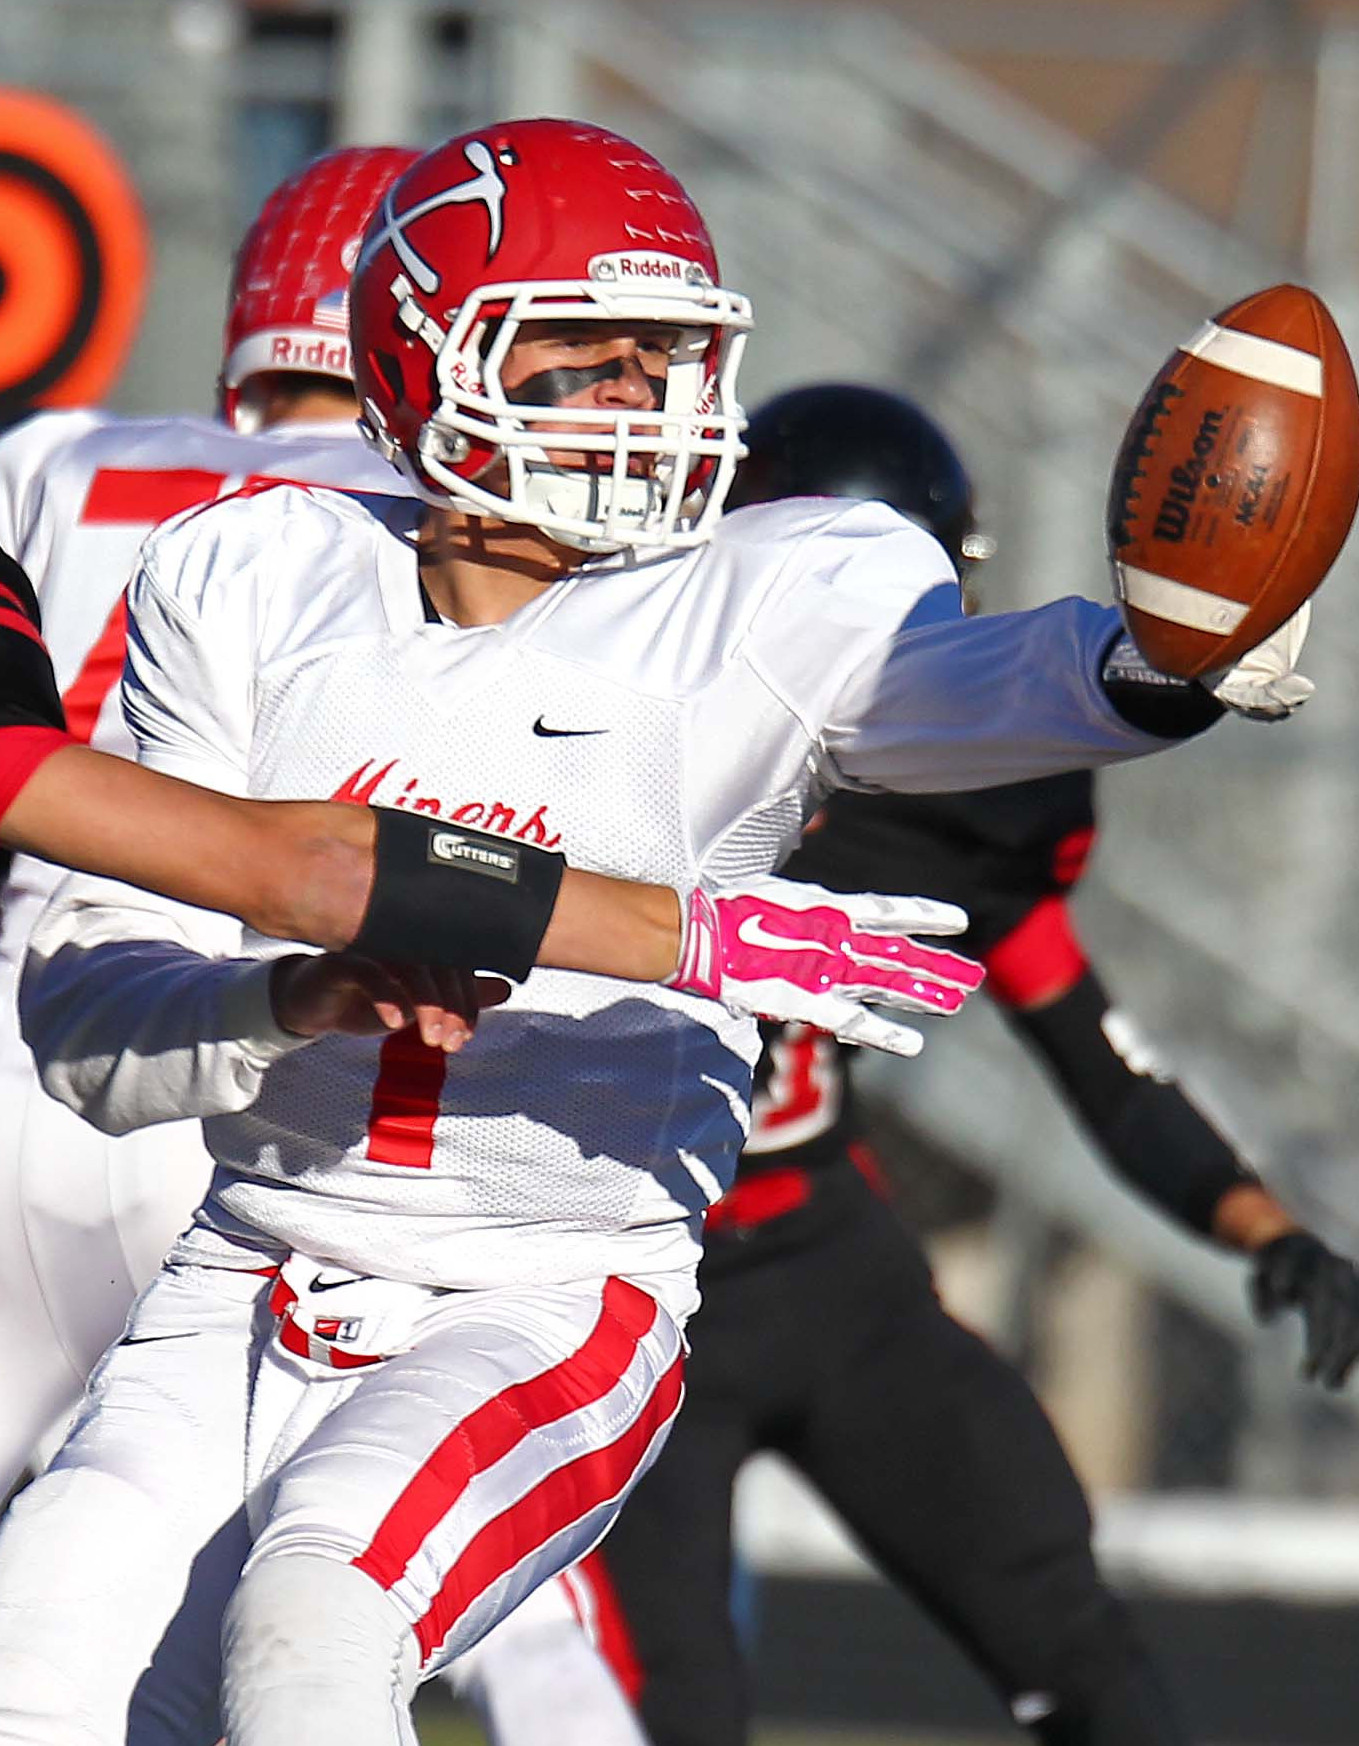 Park City's Spencer Zur made up for four interceptions by passing for 414 yards and three TDs Friday night. | File photo by Robert Hoppie